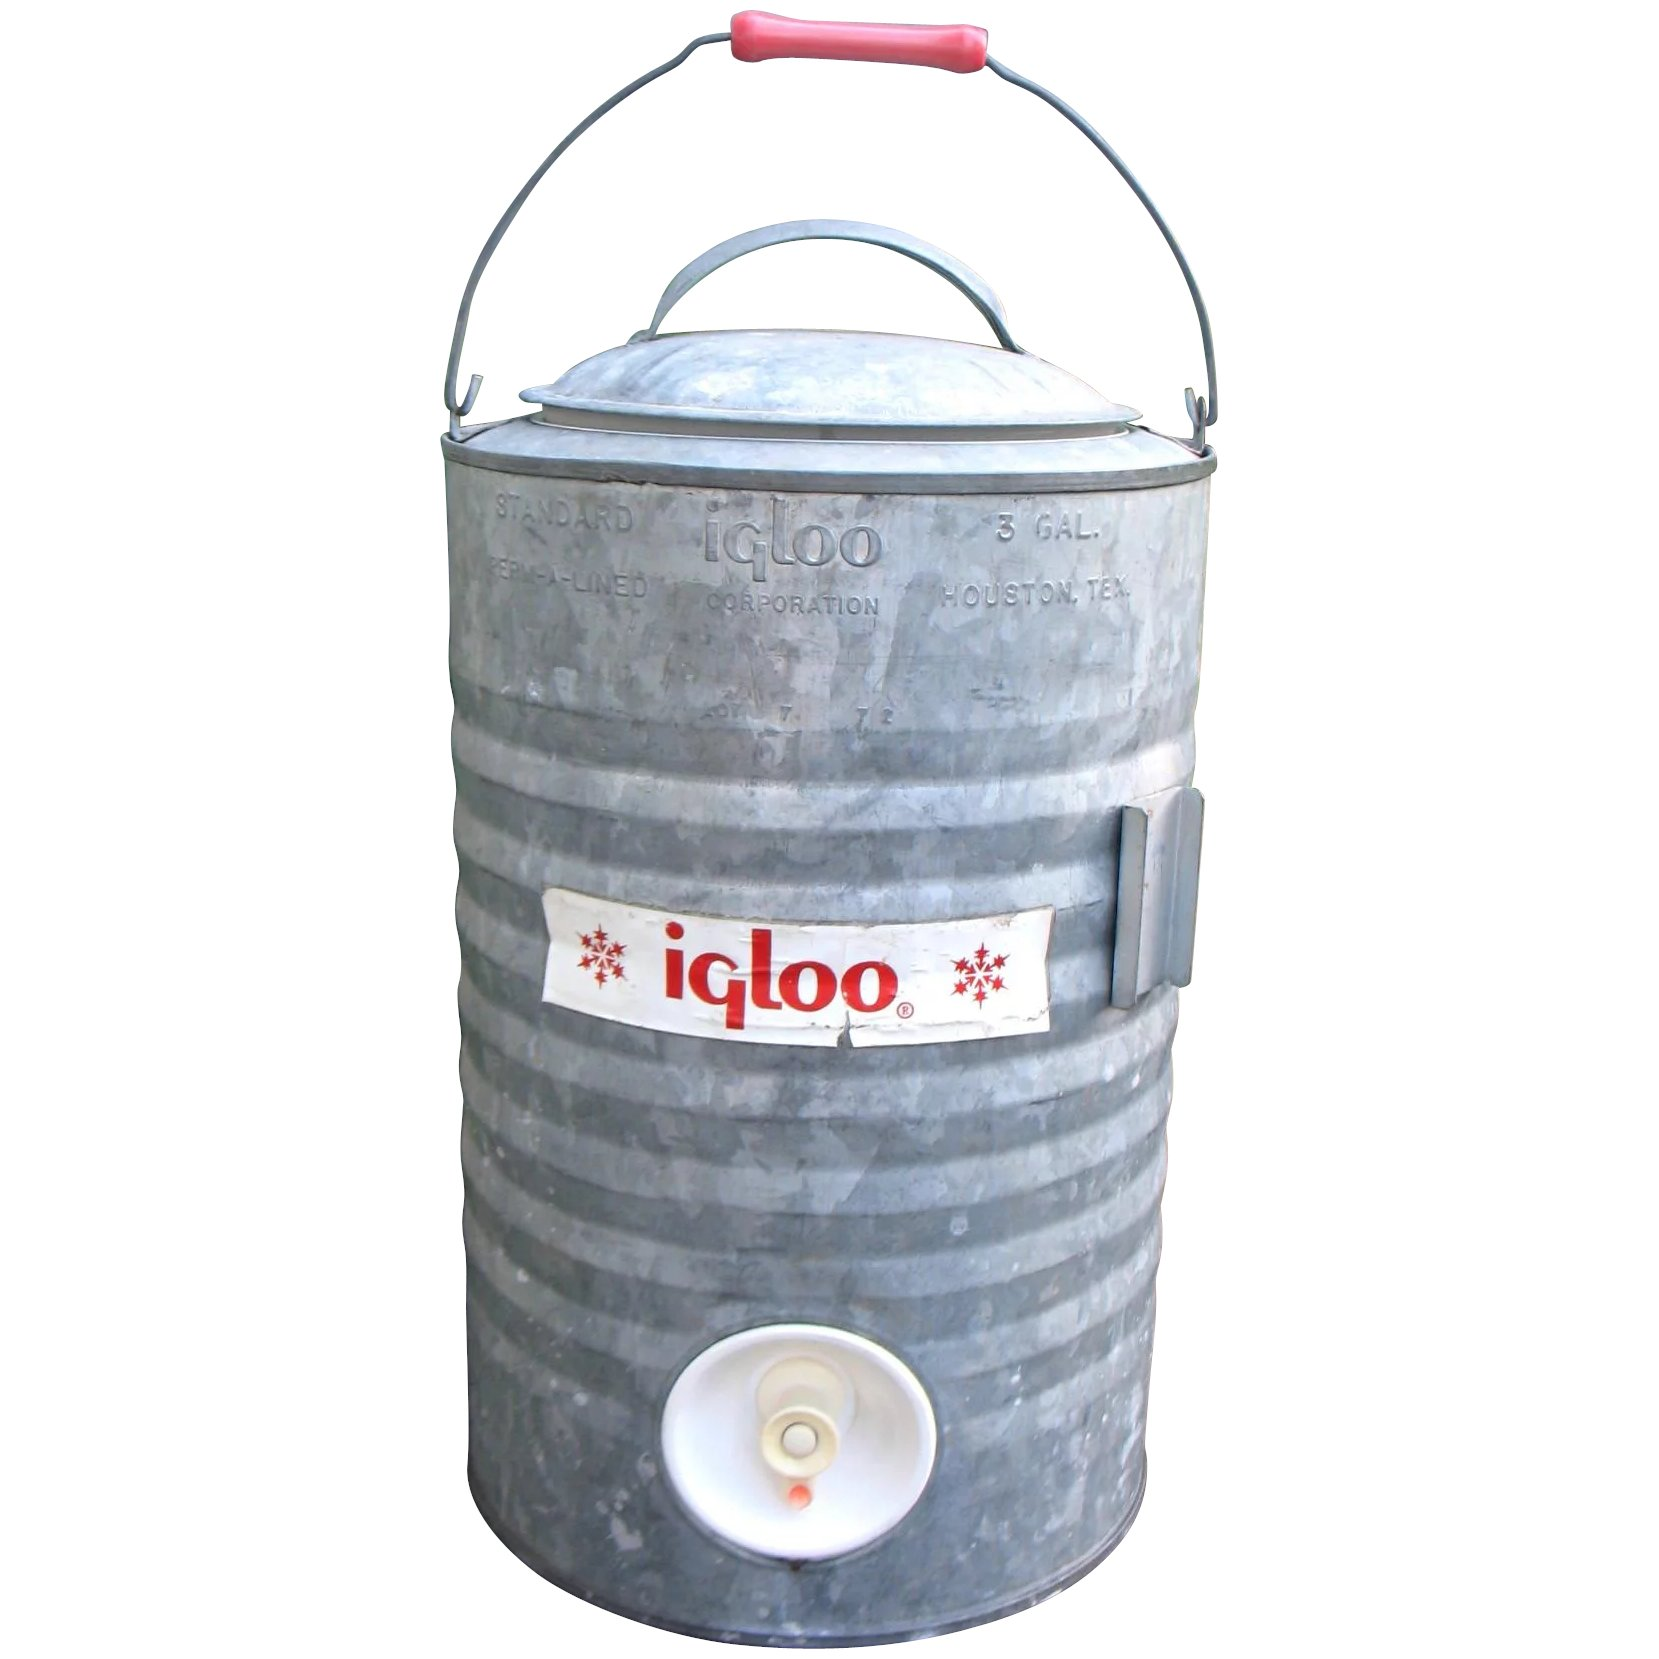 Excellent Vintage IGLOO Galvanized Metal Cooler 3 Gallon Spigot Container  DA98